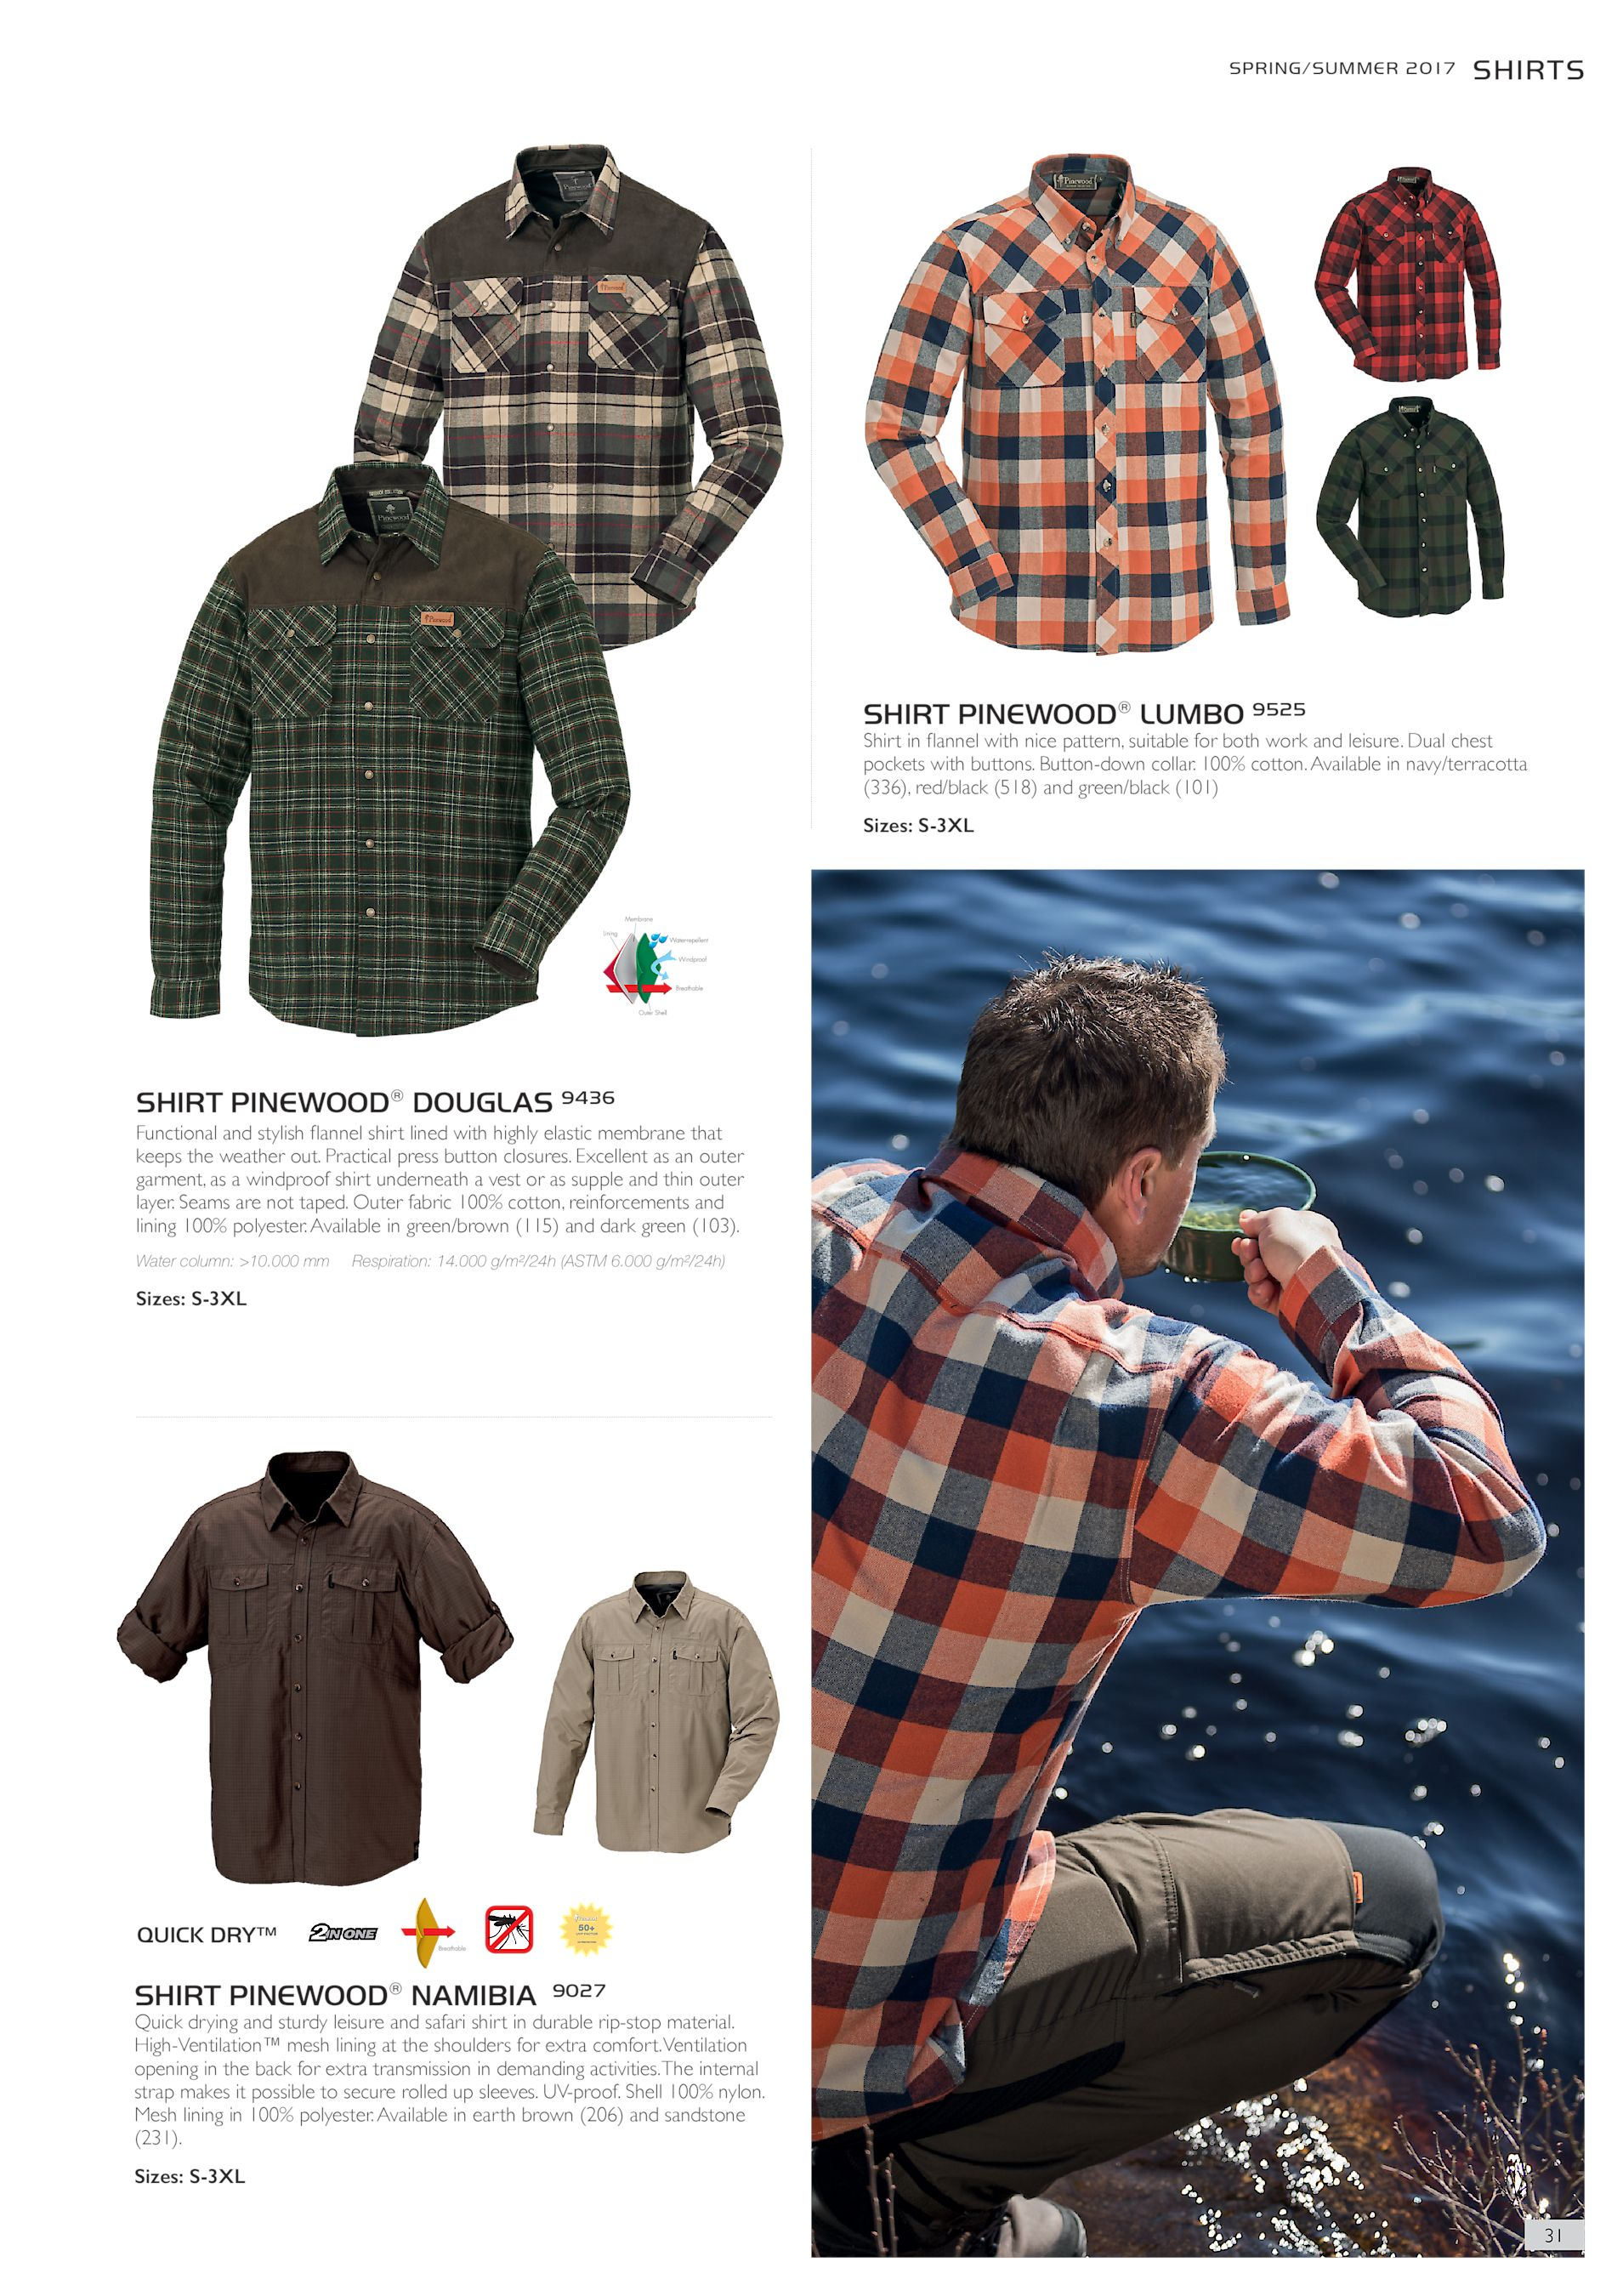 641ebafb1 EN - Outdoor Outdoor Spring Summer 2017 (endast text)